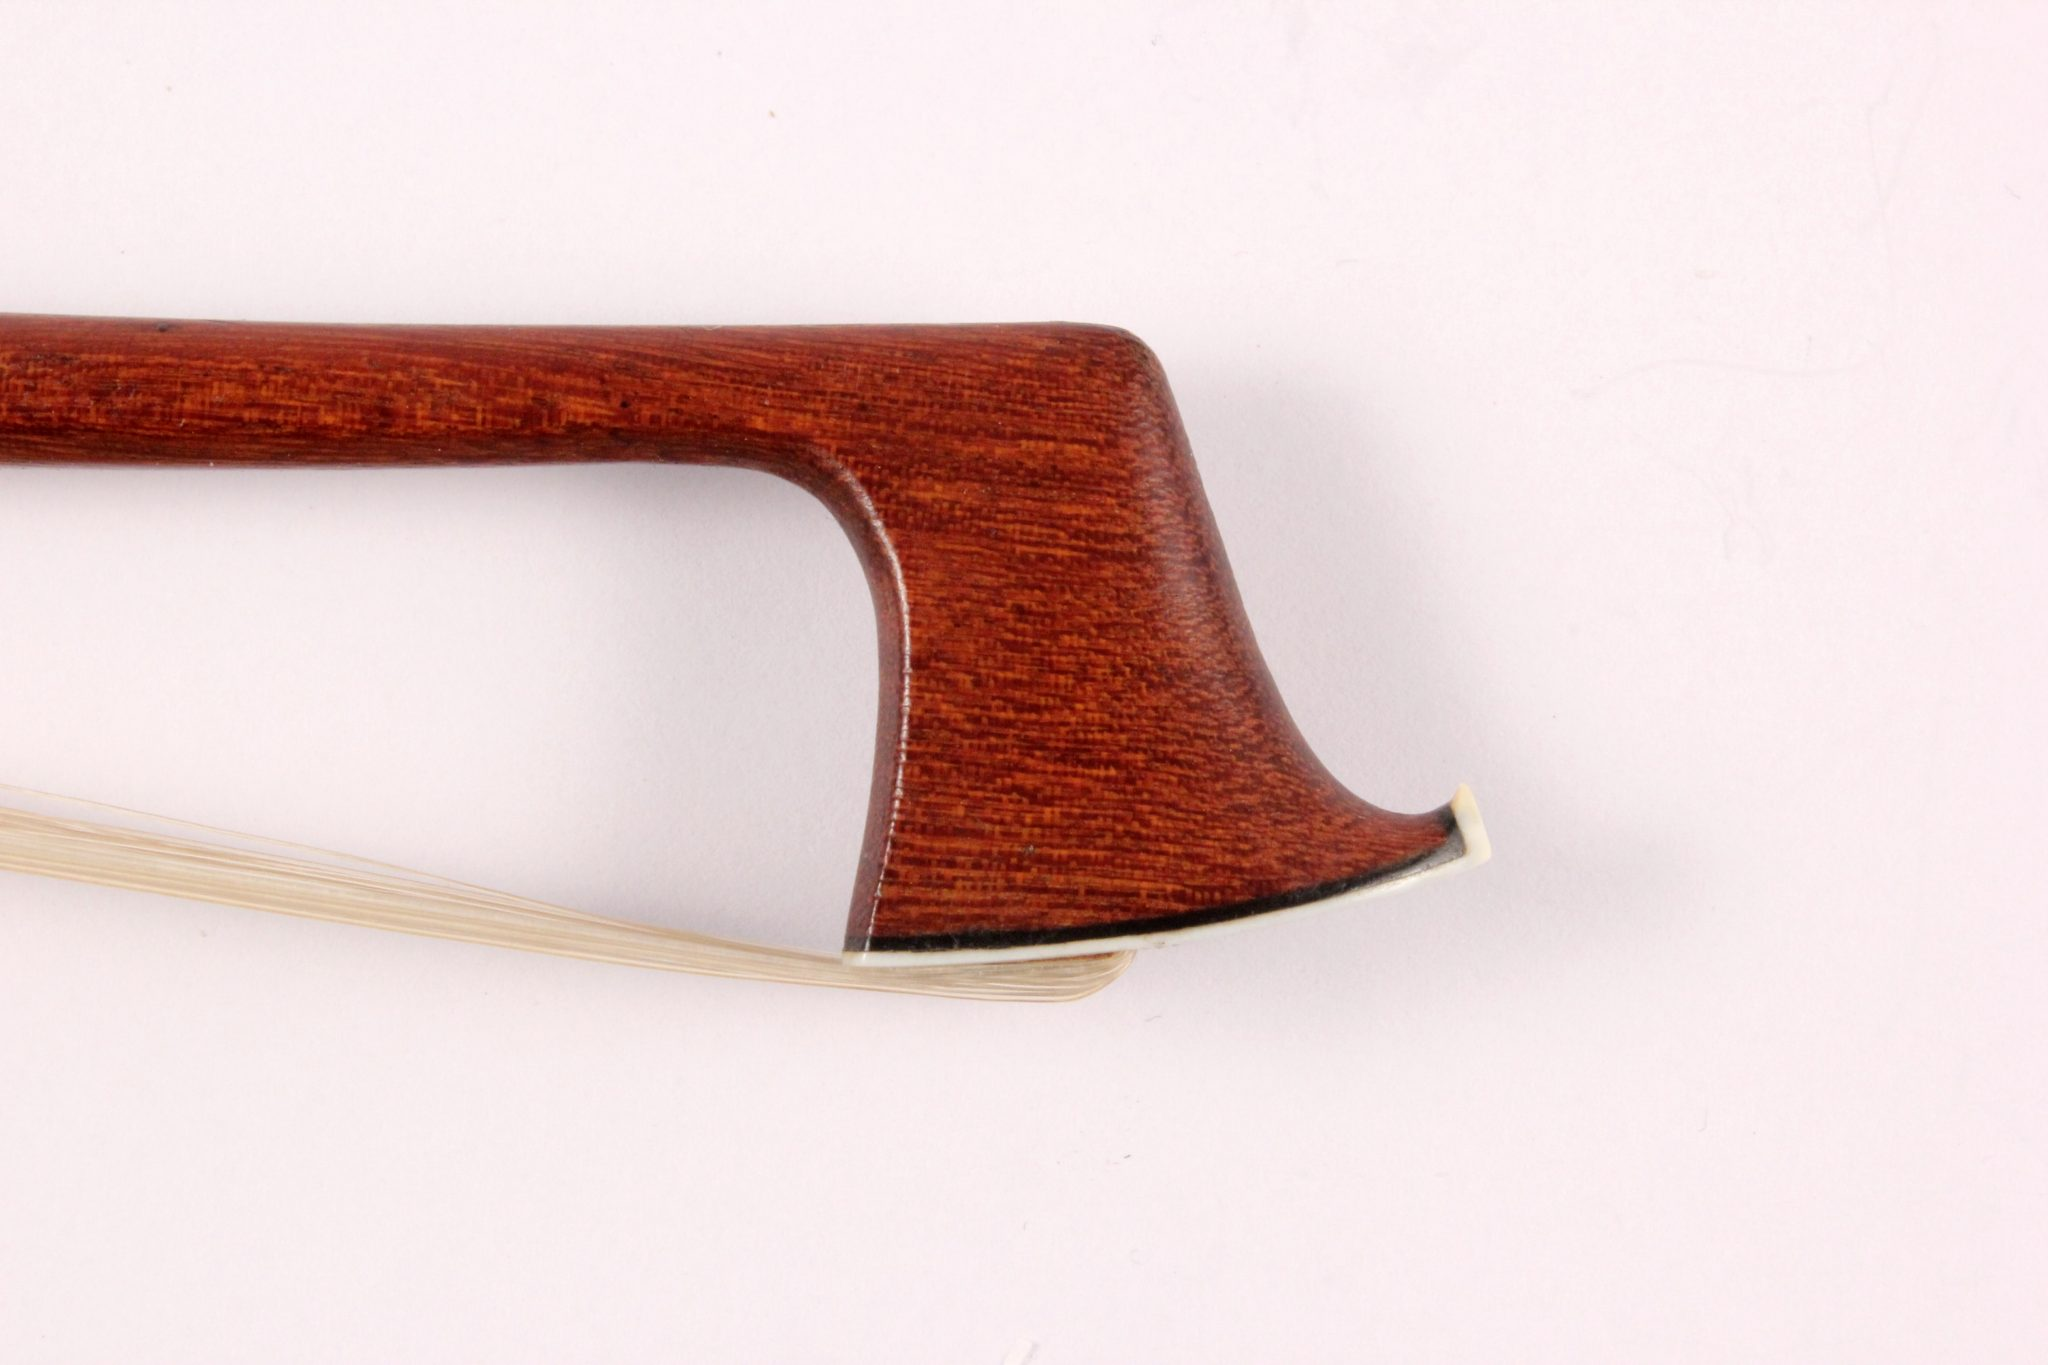 Violin bow by Arnold Voigt for sale at Bridgewood and Neitzert London